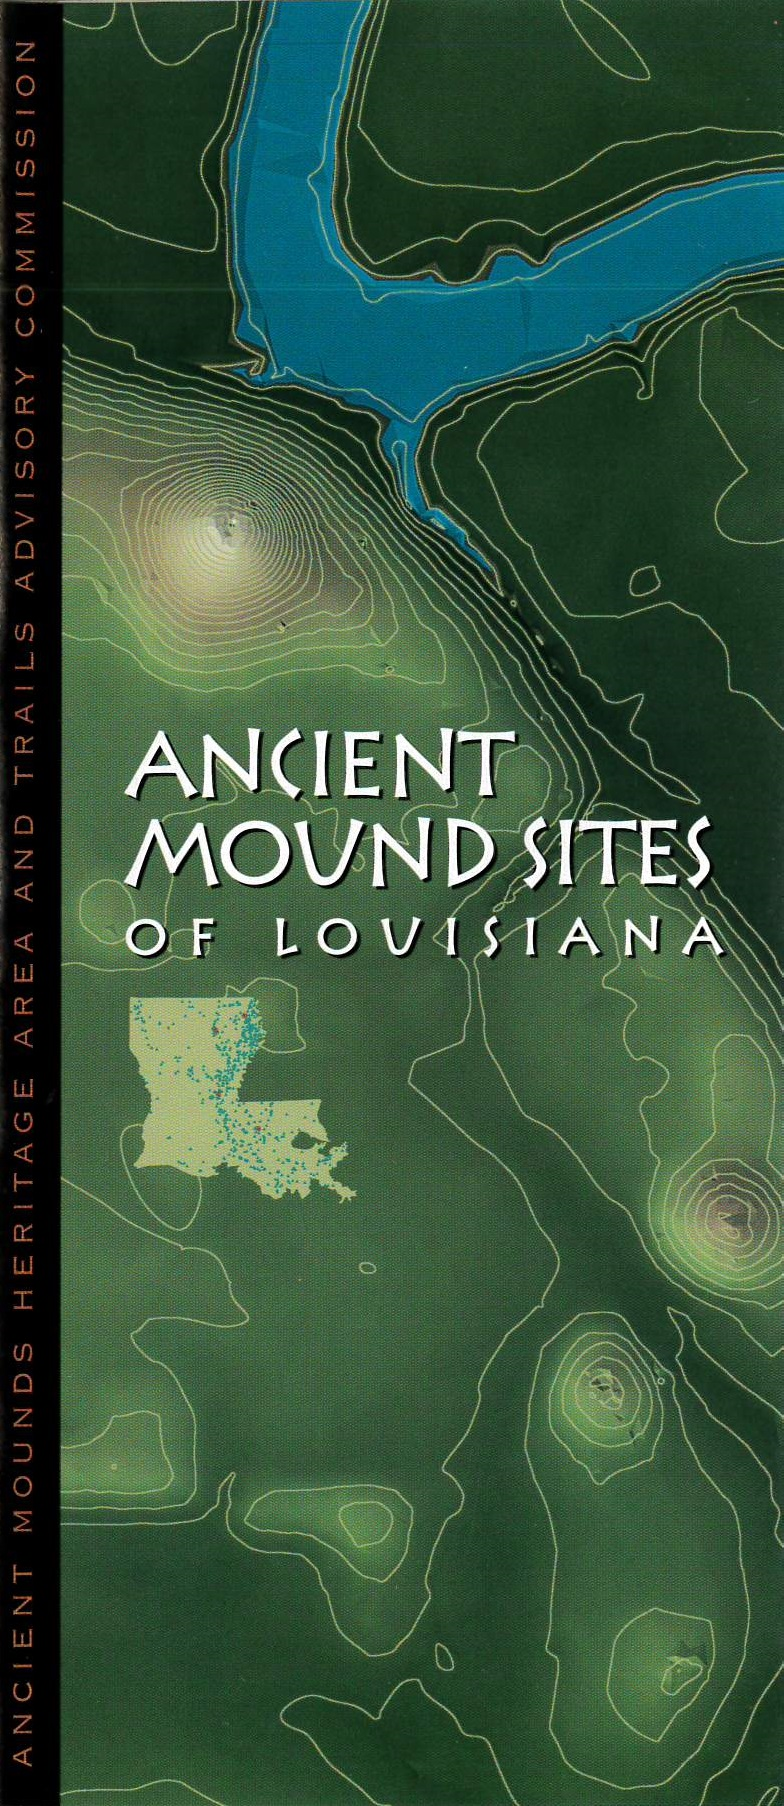 Ancient Mound Site of Louisiana Brochure Cover Image